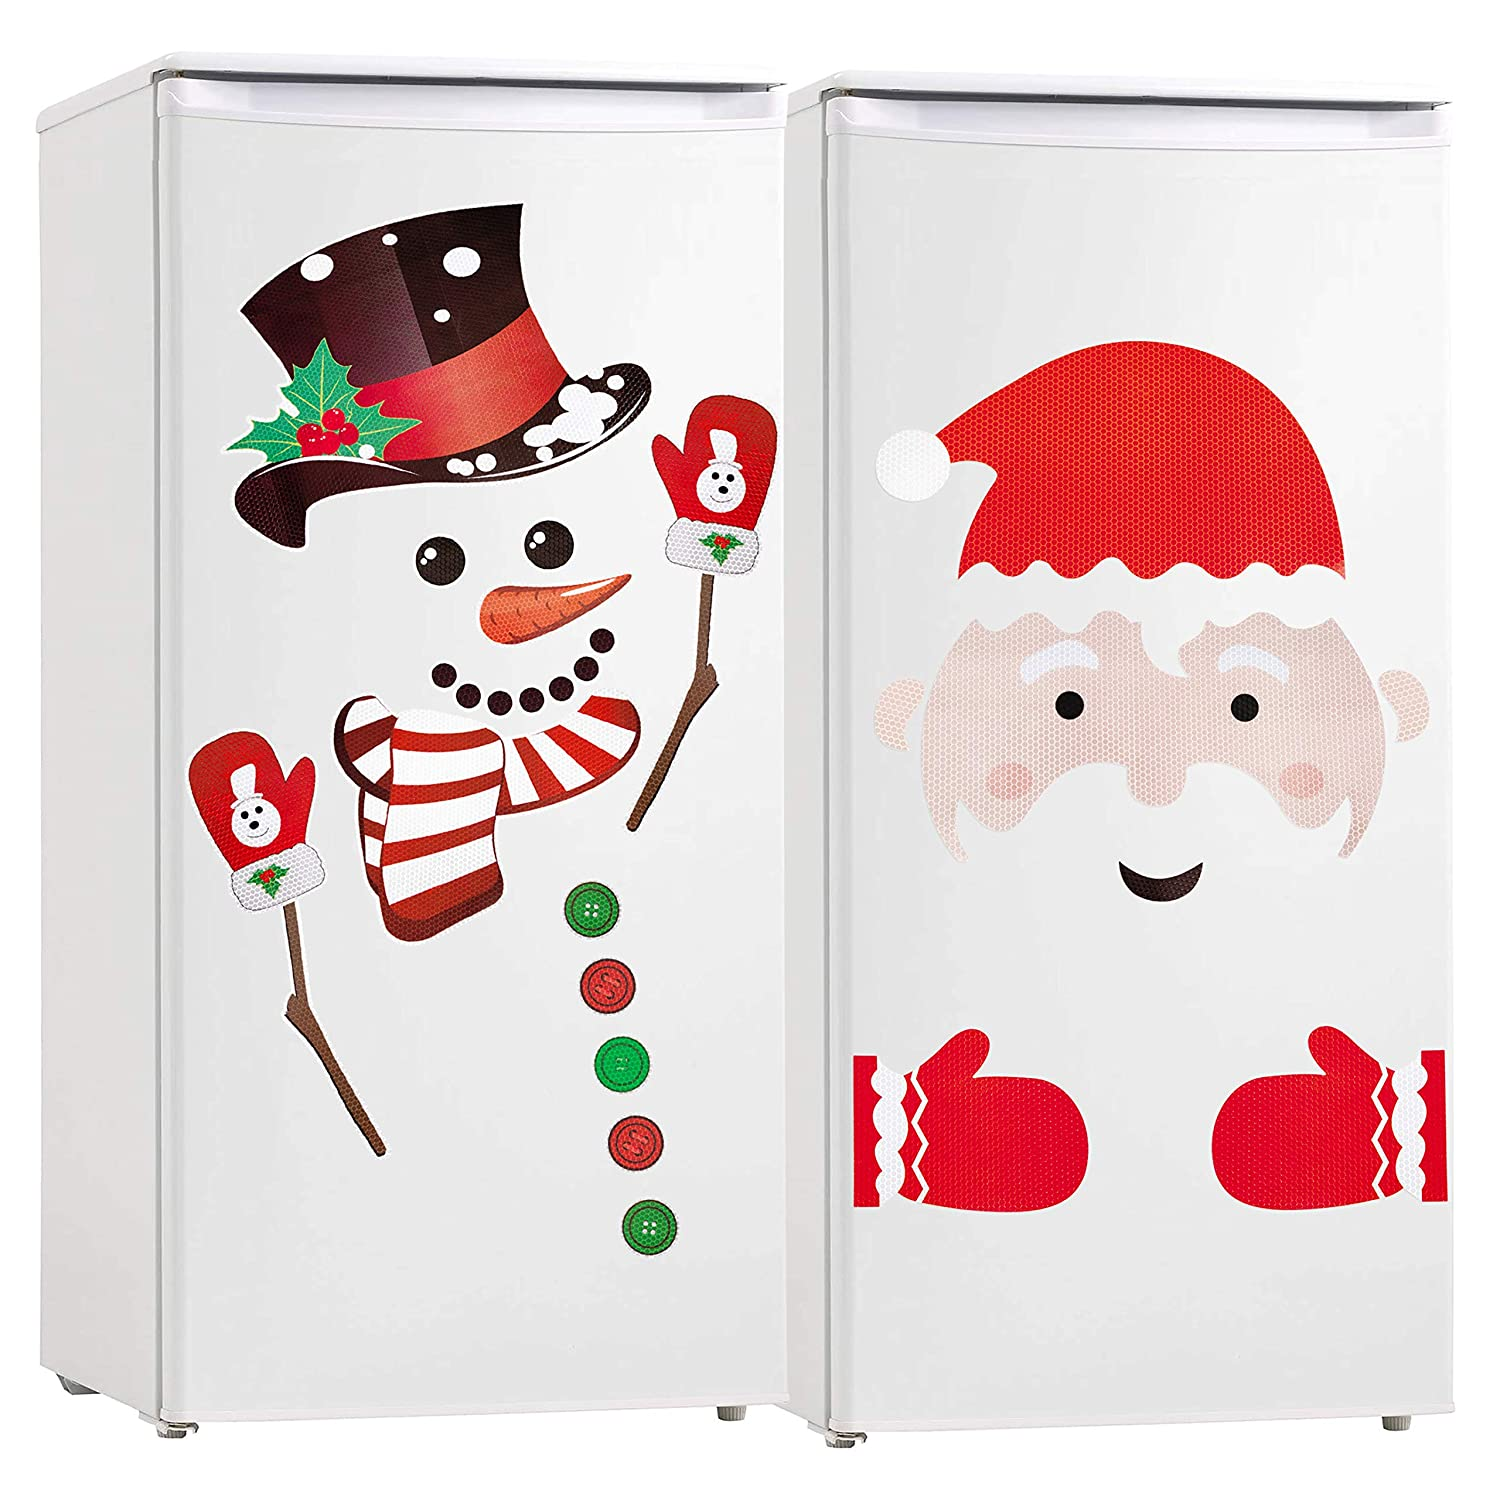 Christmas Refrigerator Magnets Reflective Snowman Santa Clause Decorations Xmas Holiday Garage Fridge Kitchen Cute Funny Decor